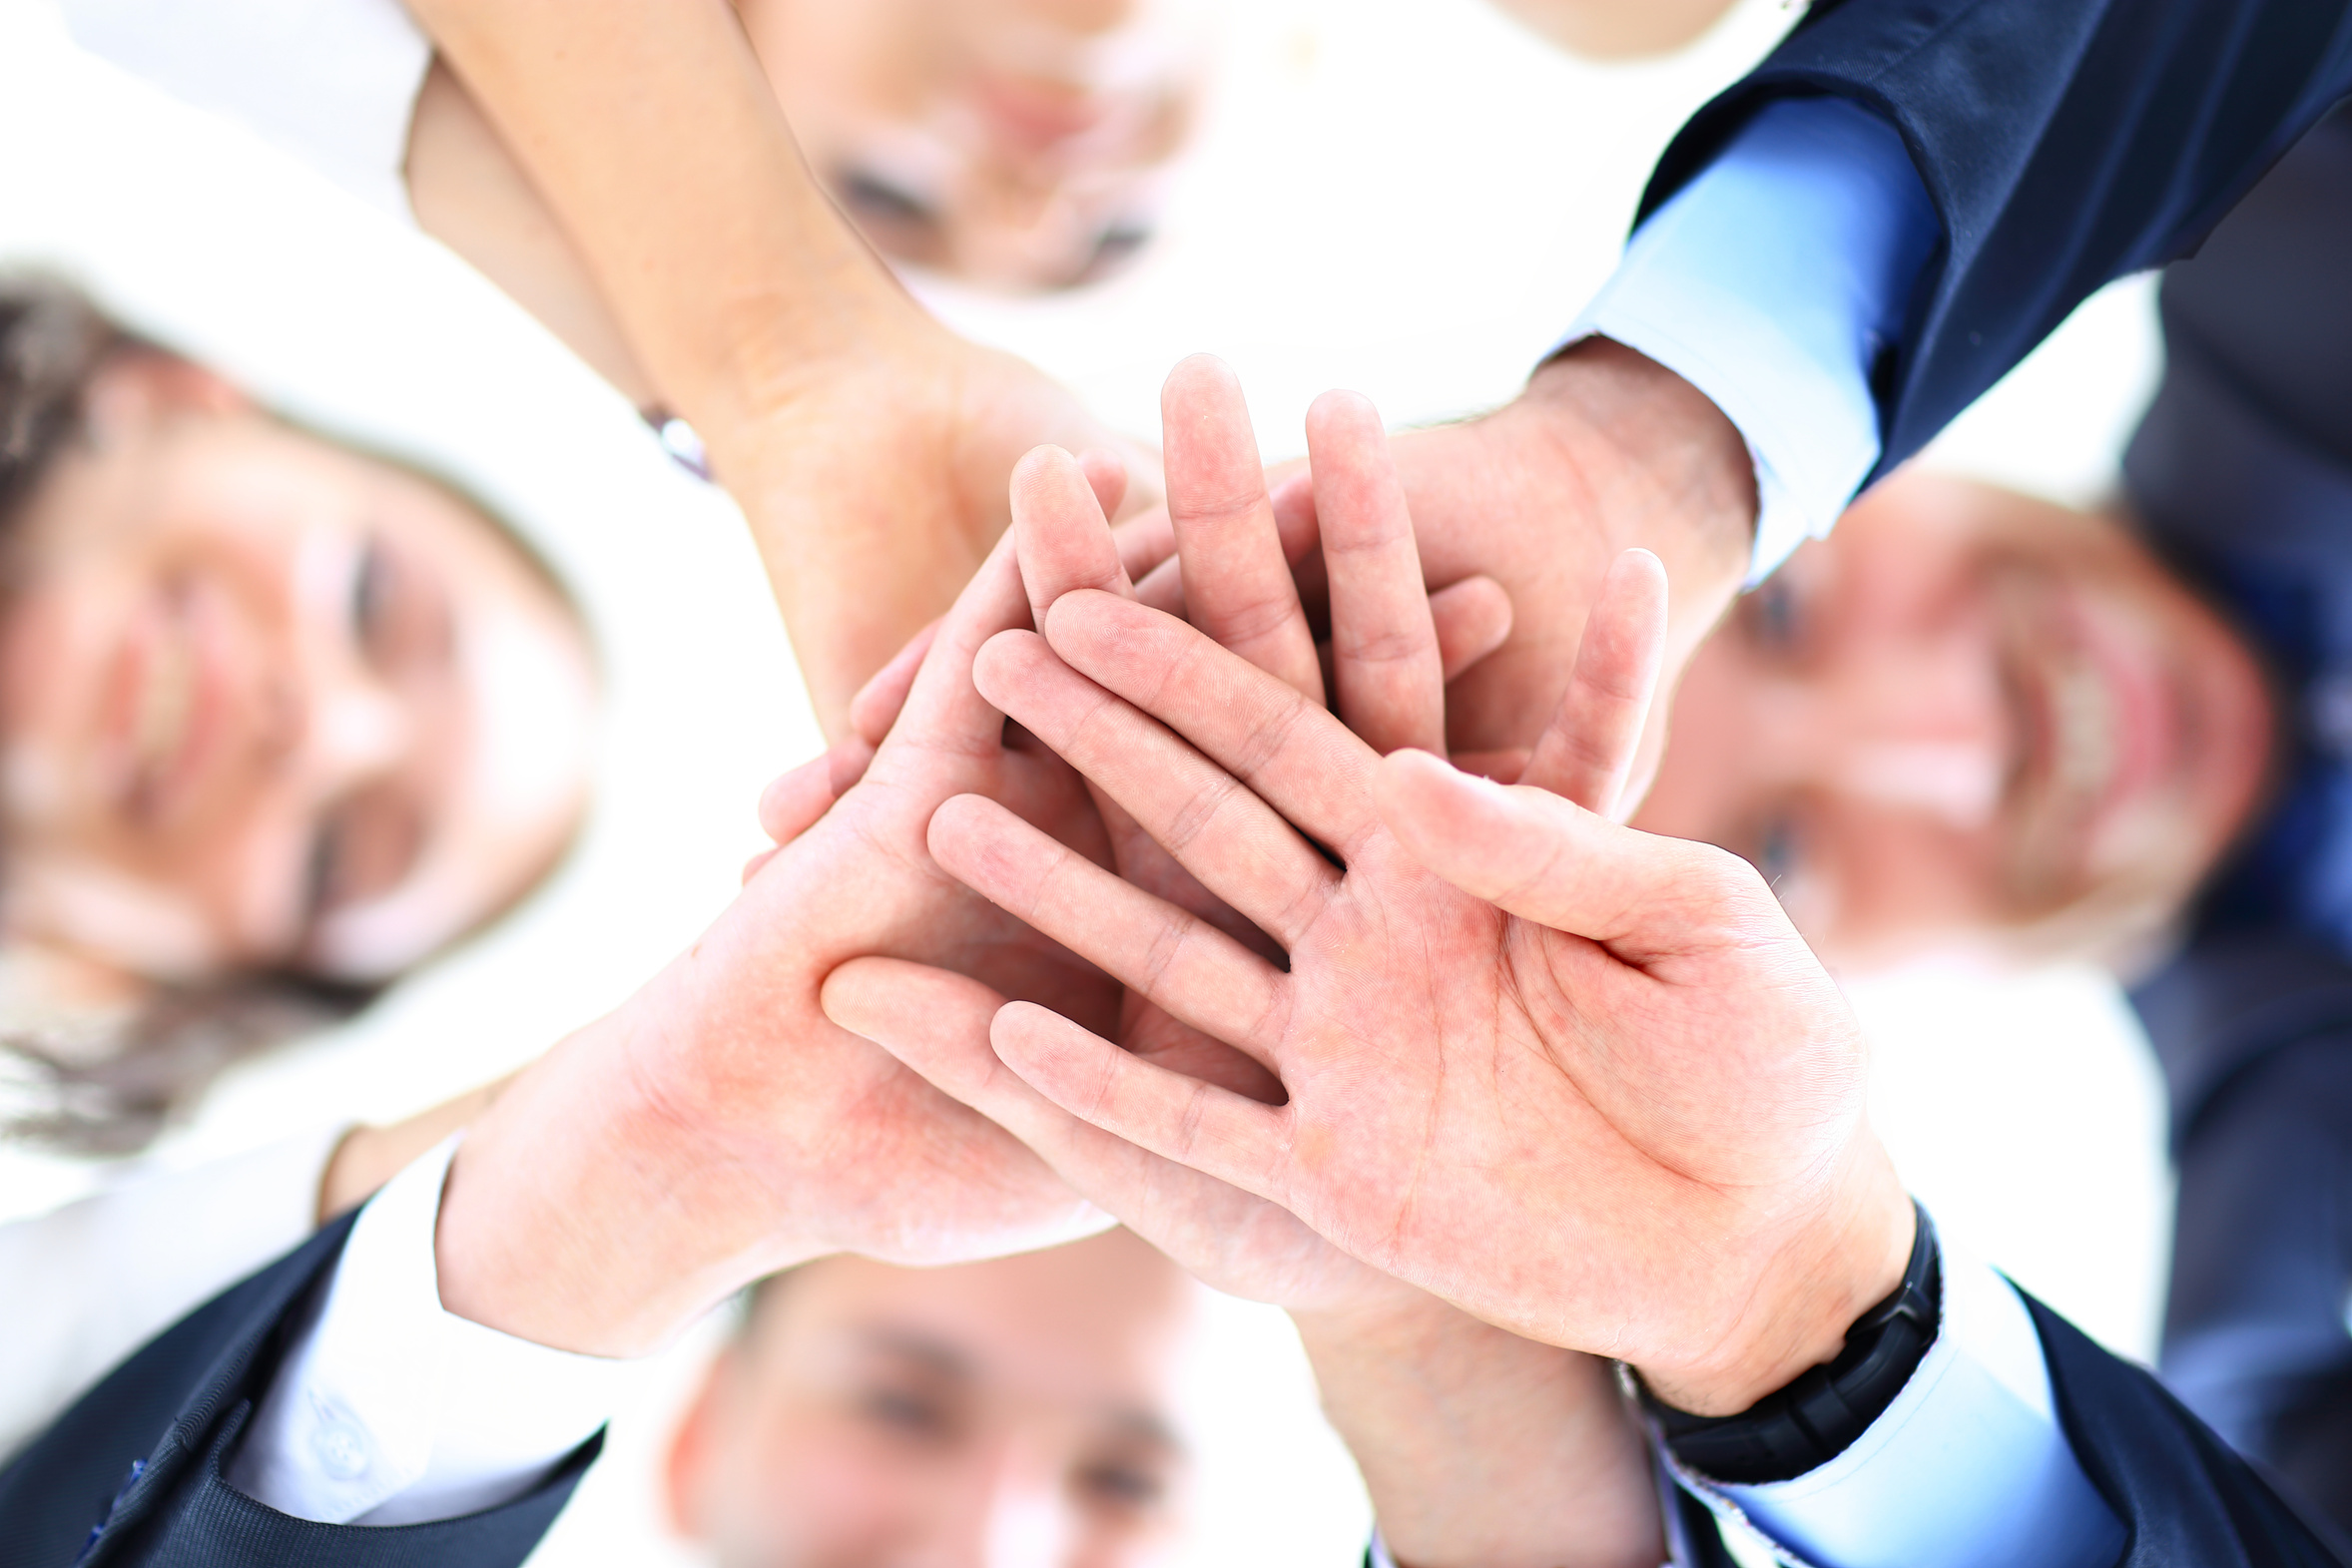 Small group of business people joining hands